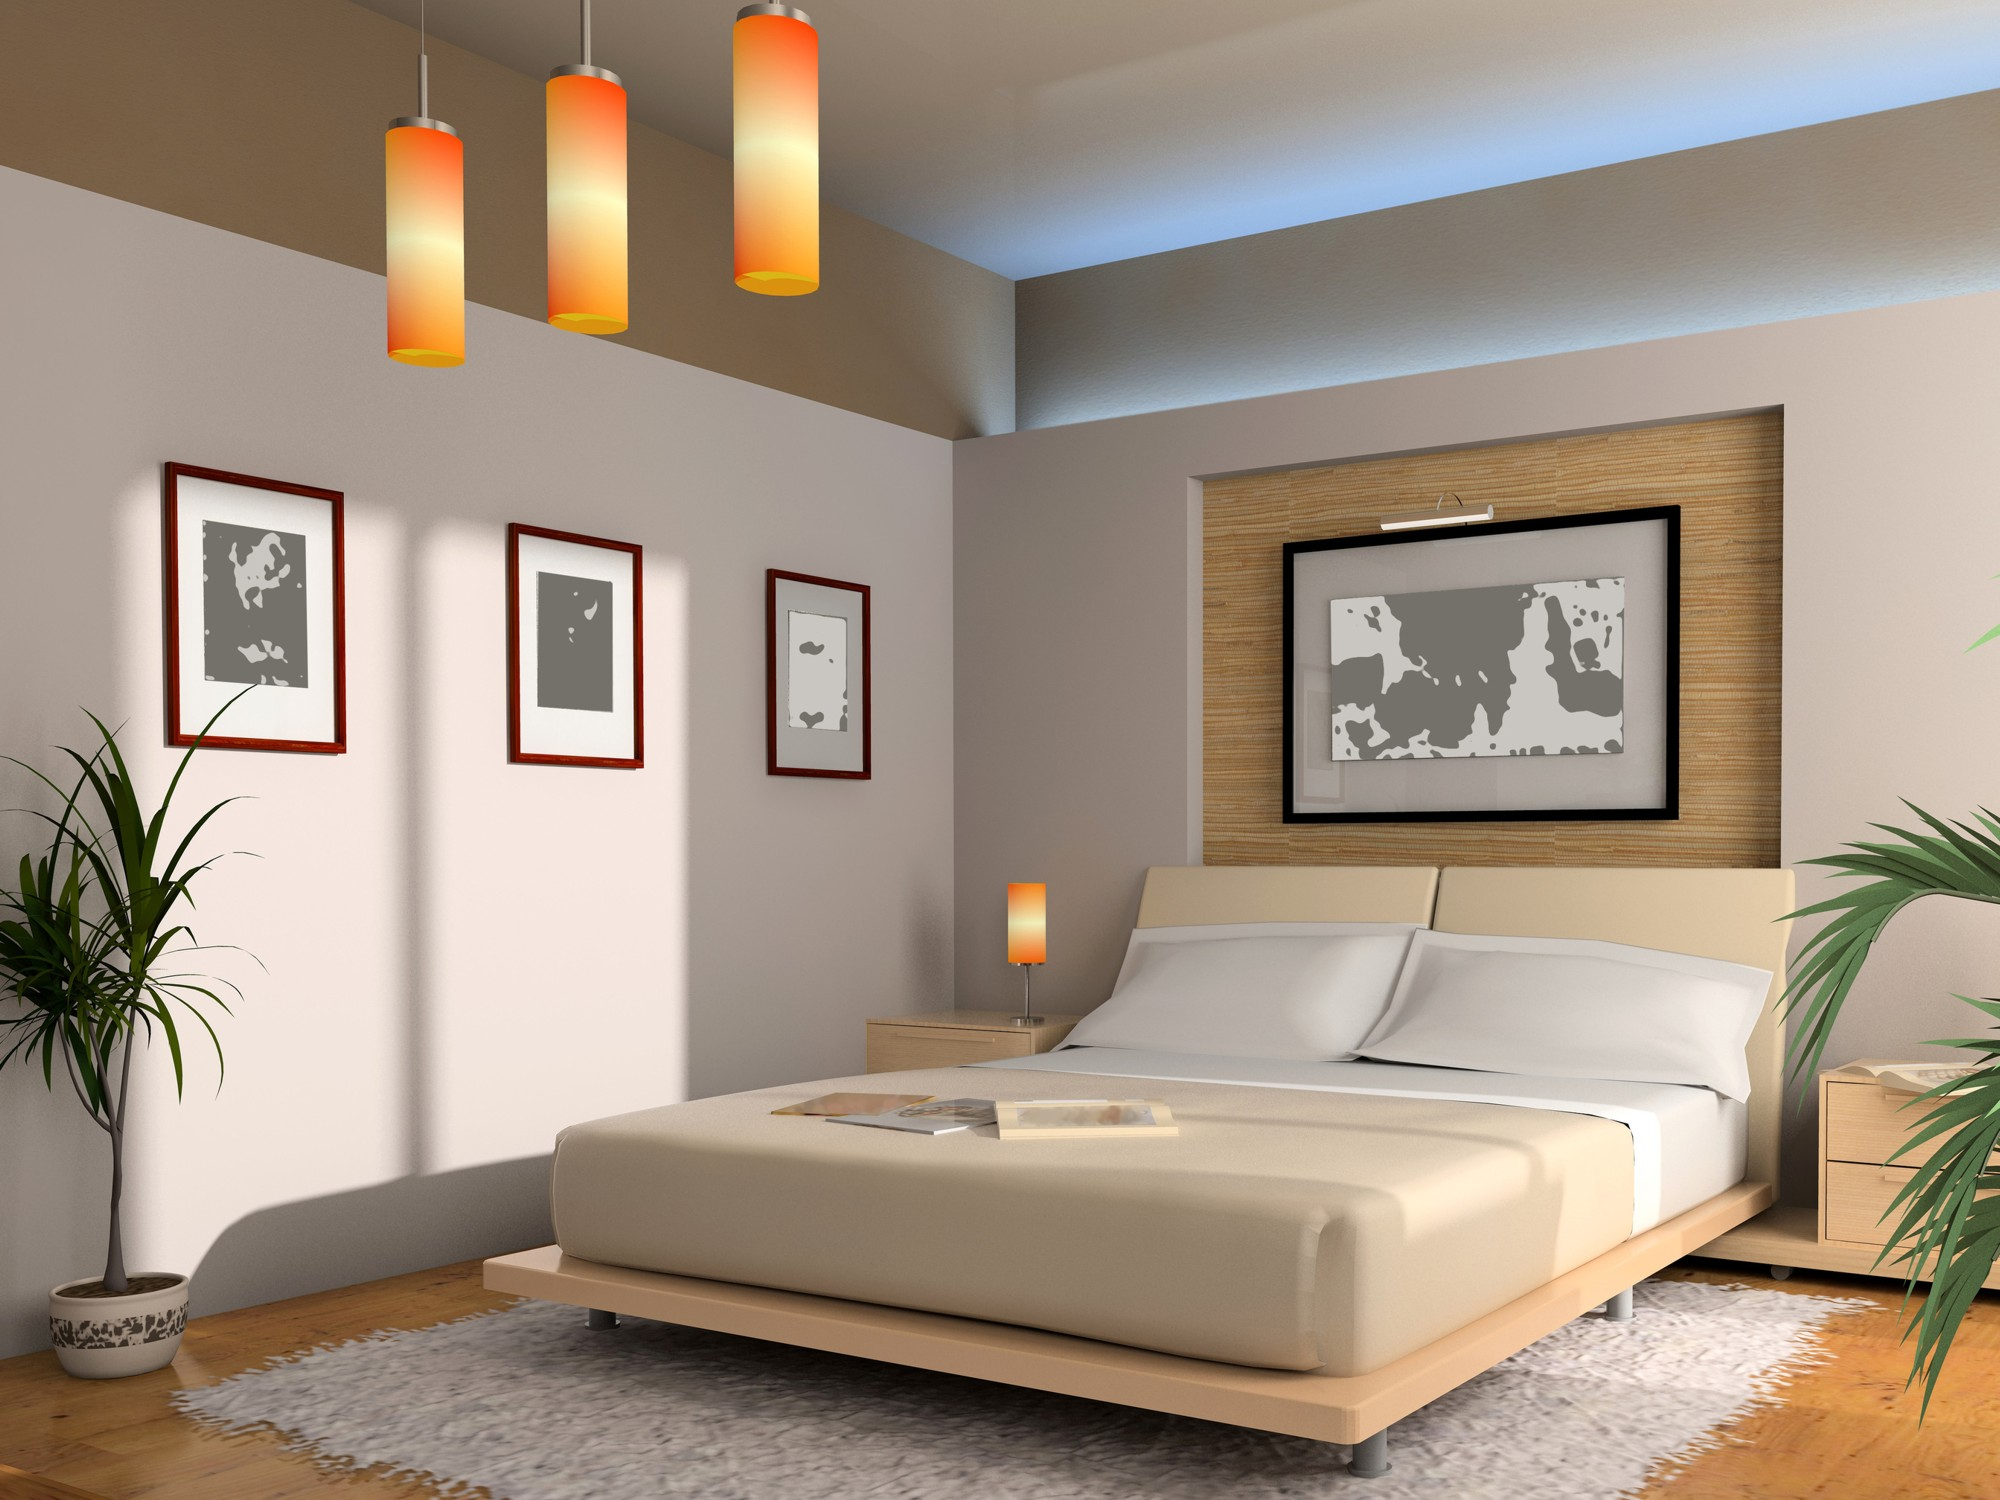 Feng Shui Schlafzimmer Tapete - Feng Shui Grundregeln Schlafzimmer Feng Shui